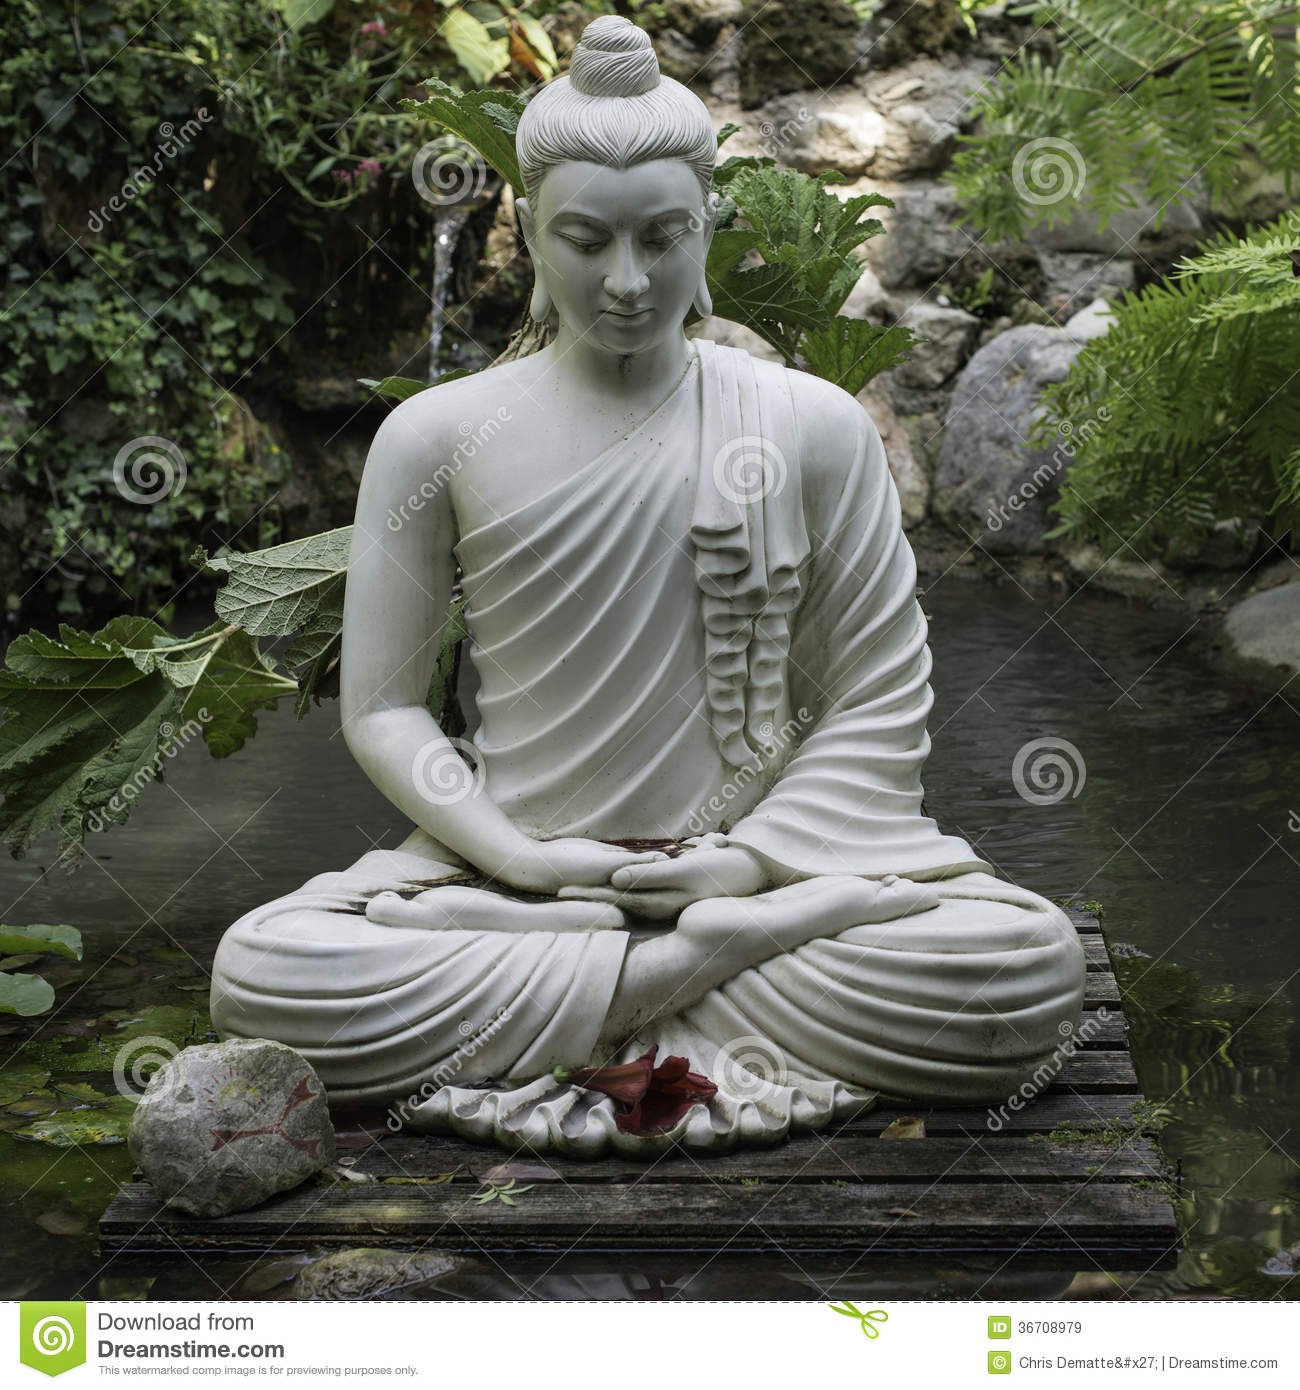 zen stock image image of religion nature garden statue. Black Bedroom Furniture Sets. Home Design Ideas